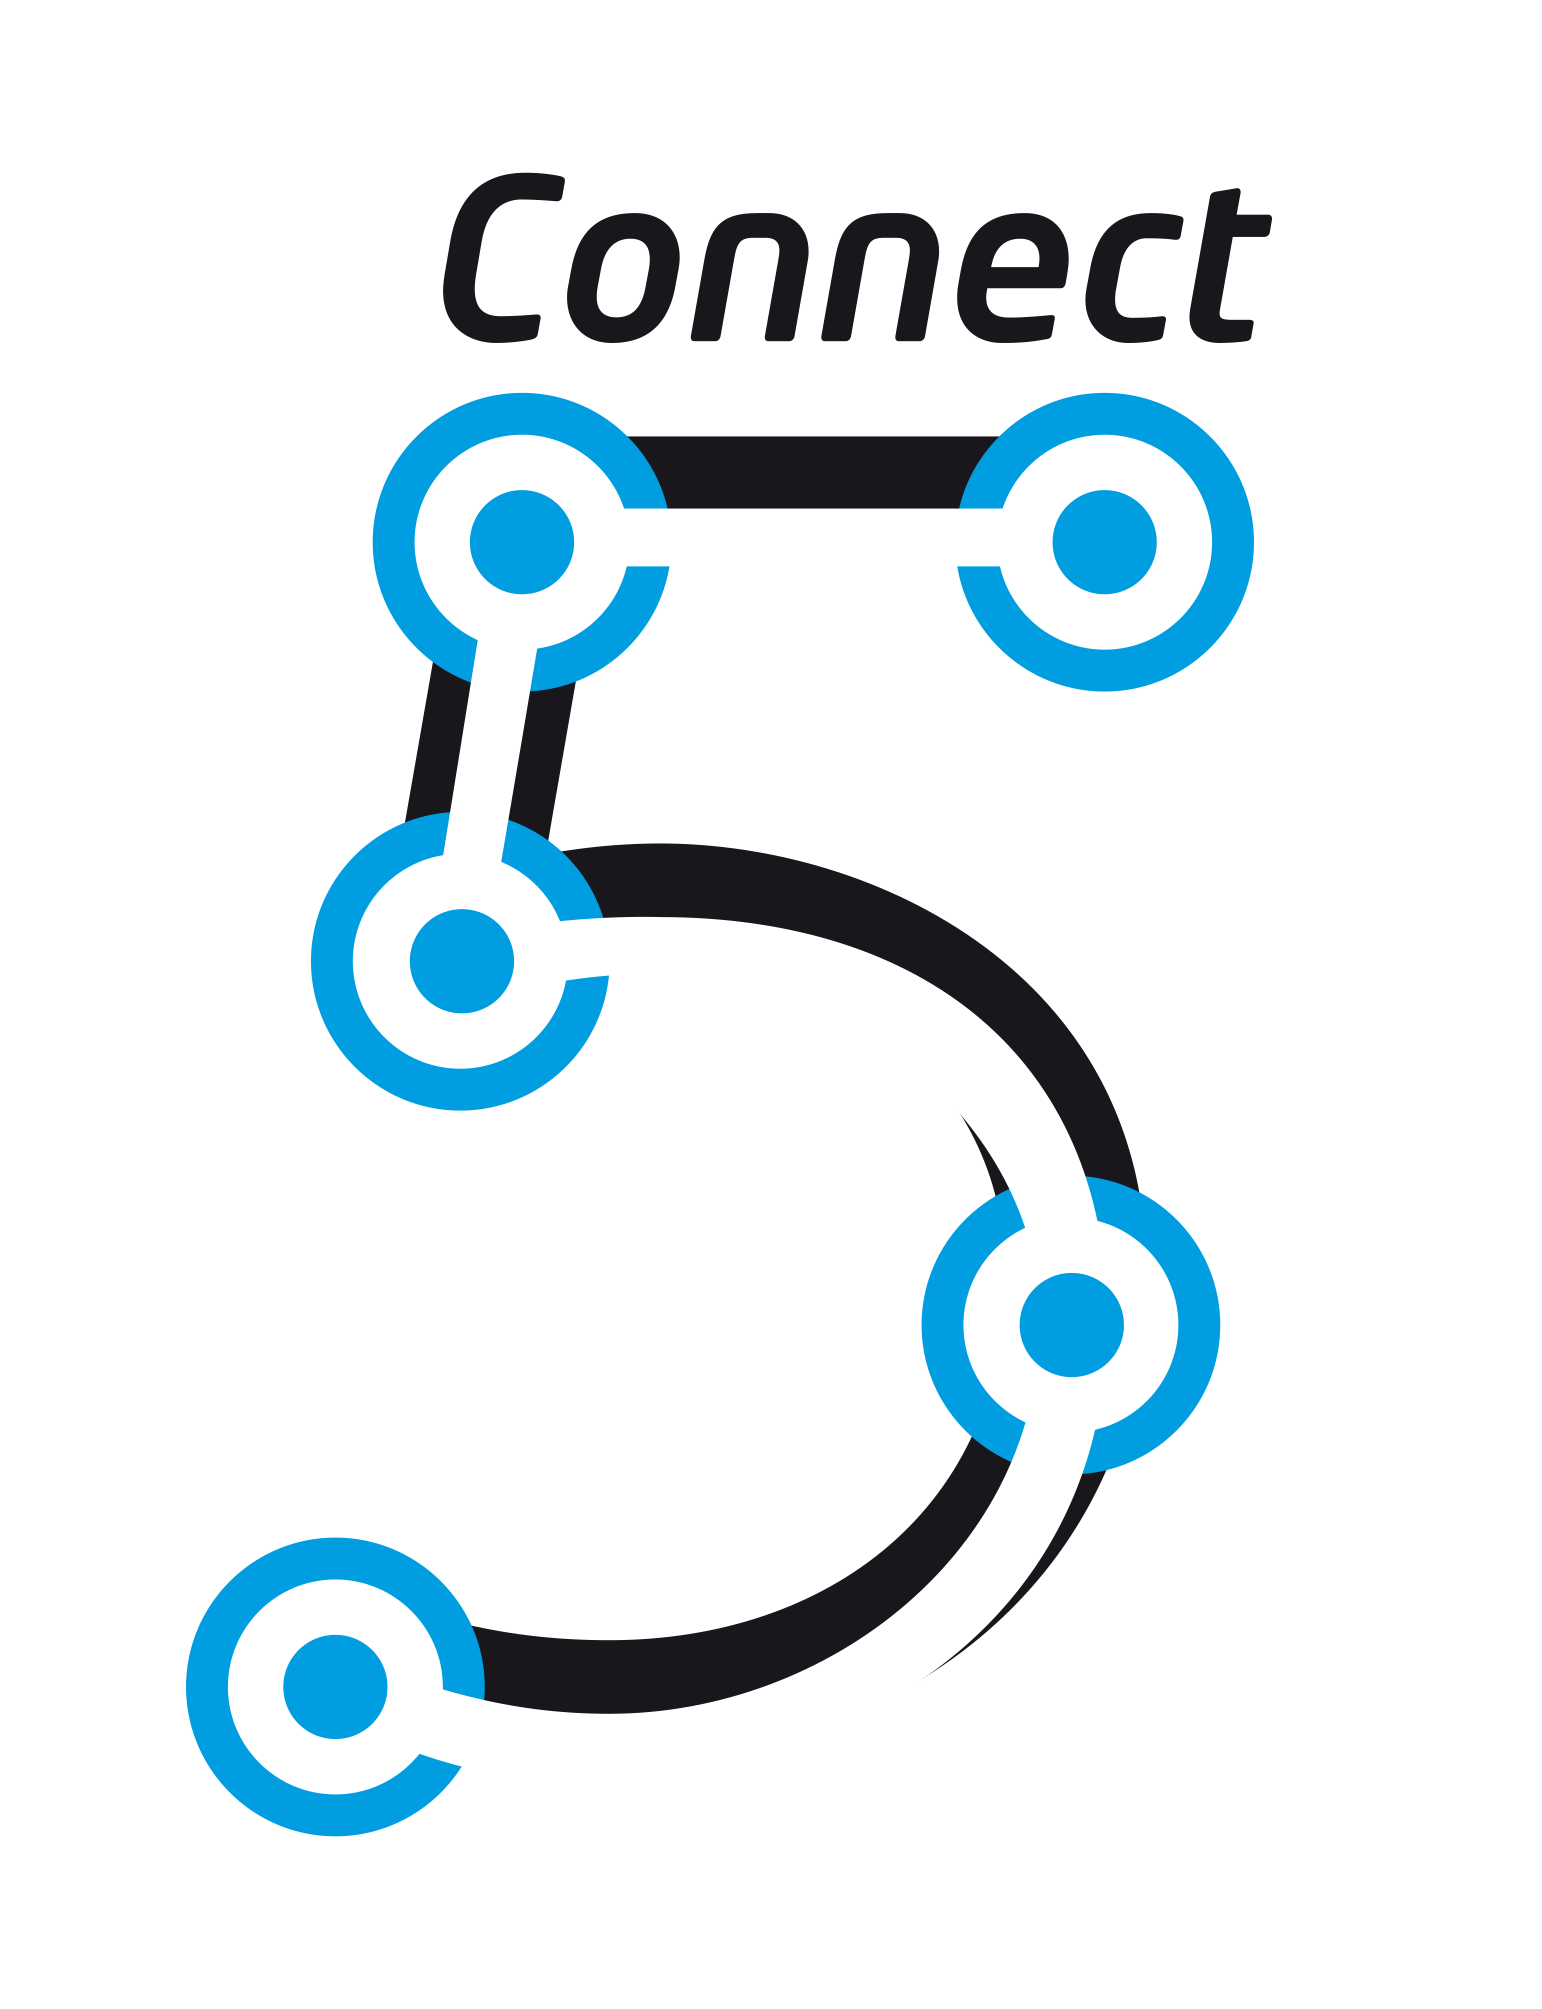 Connect5 Logo